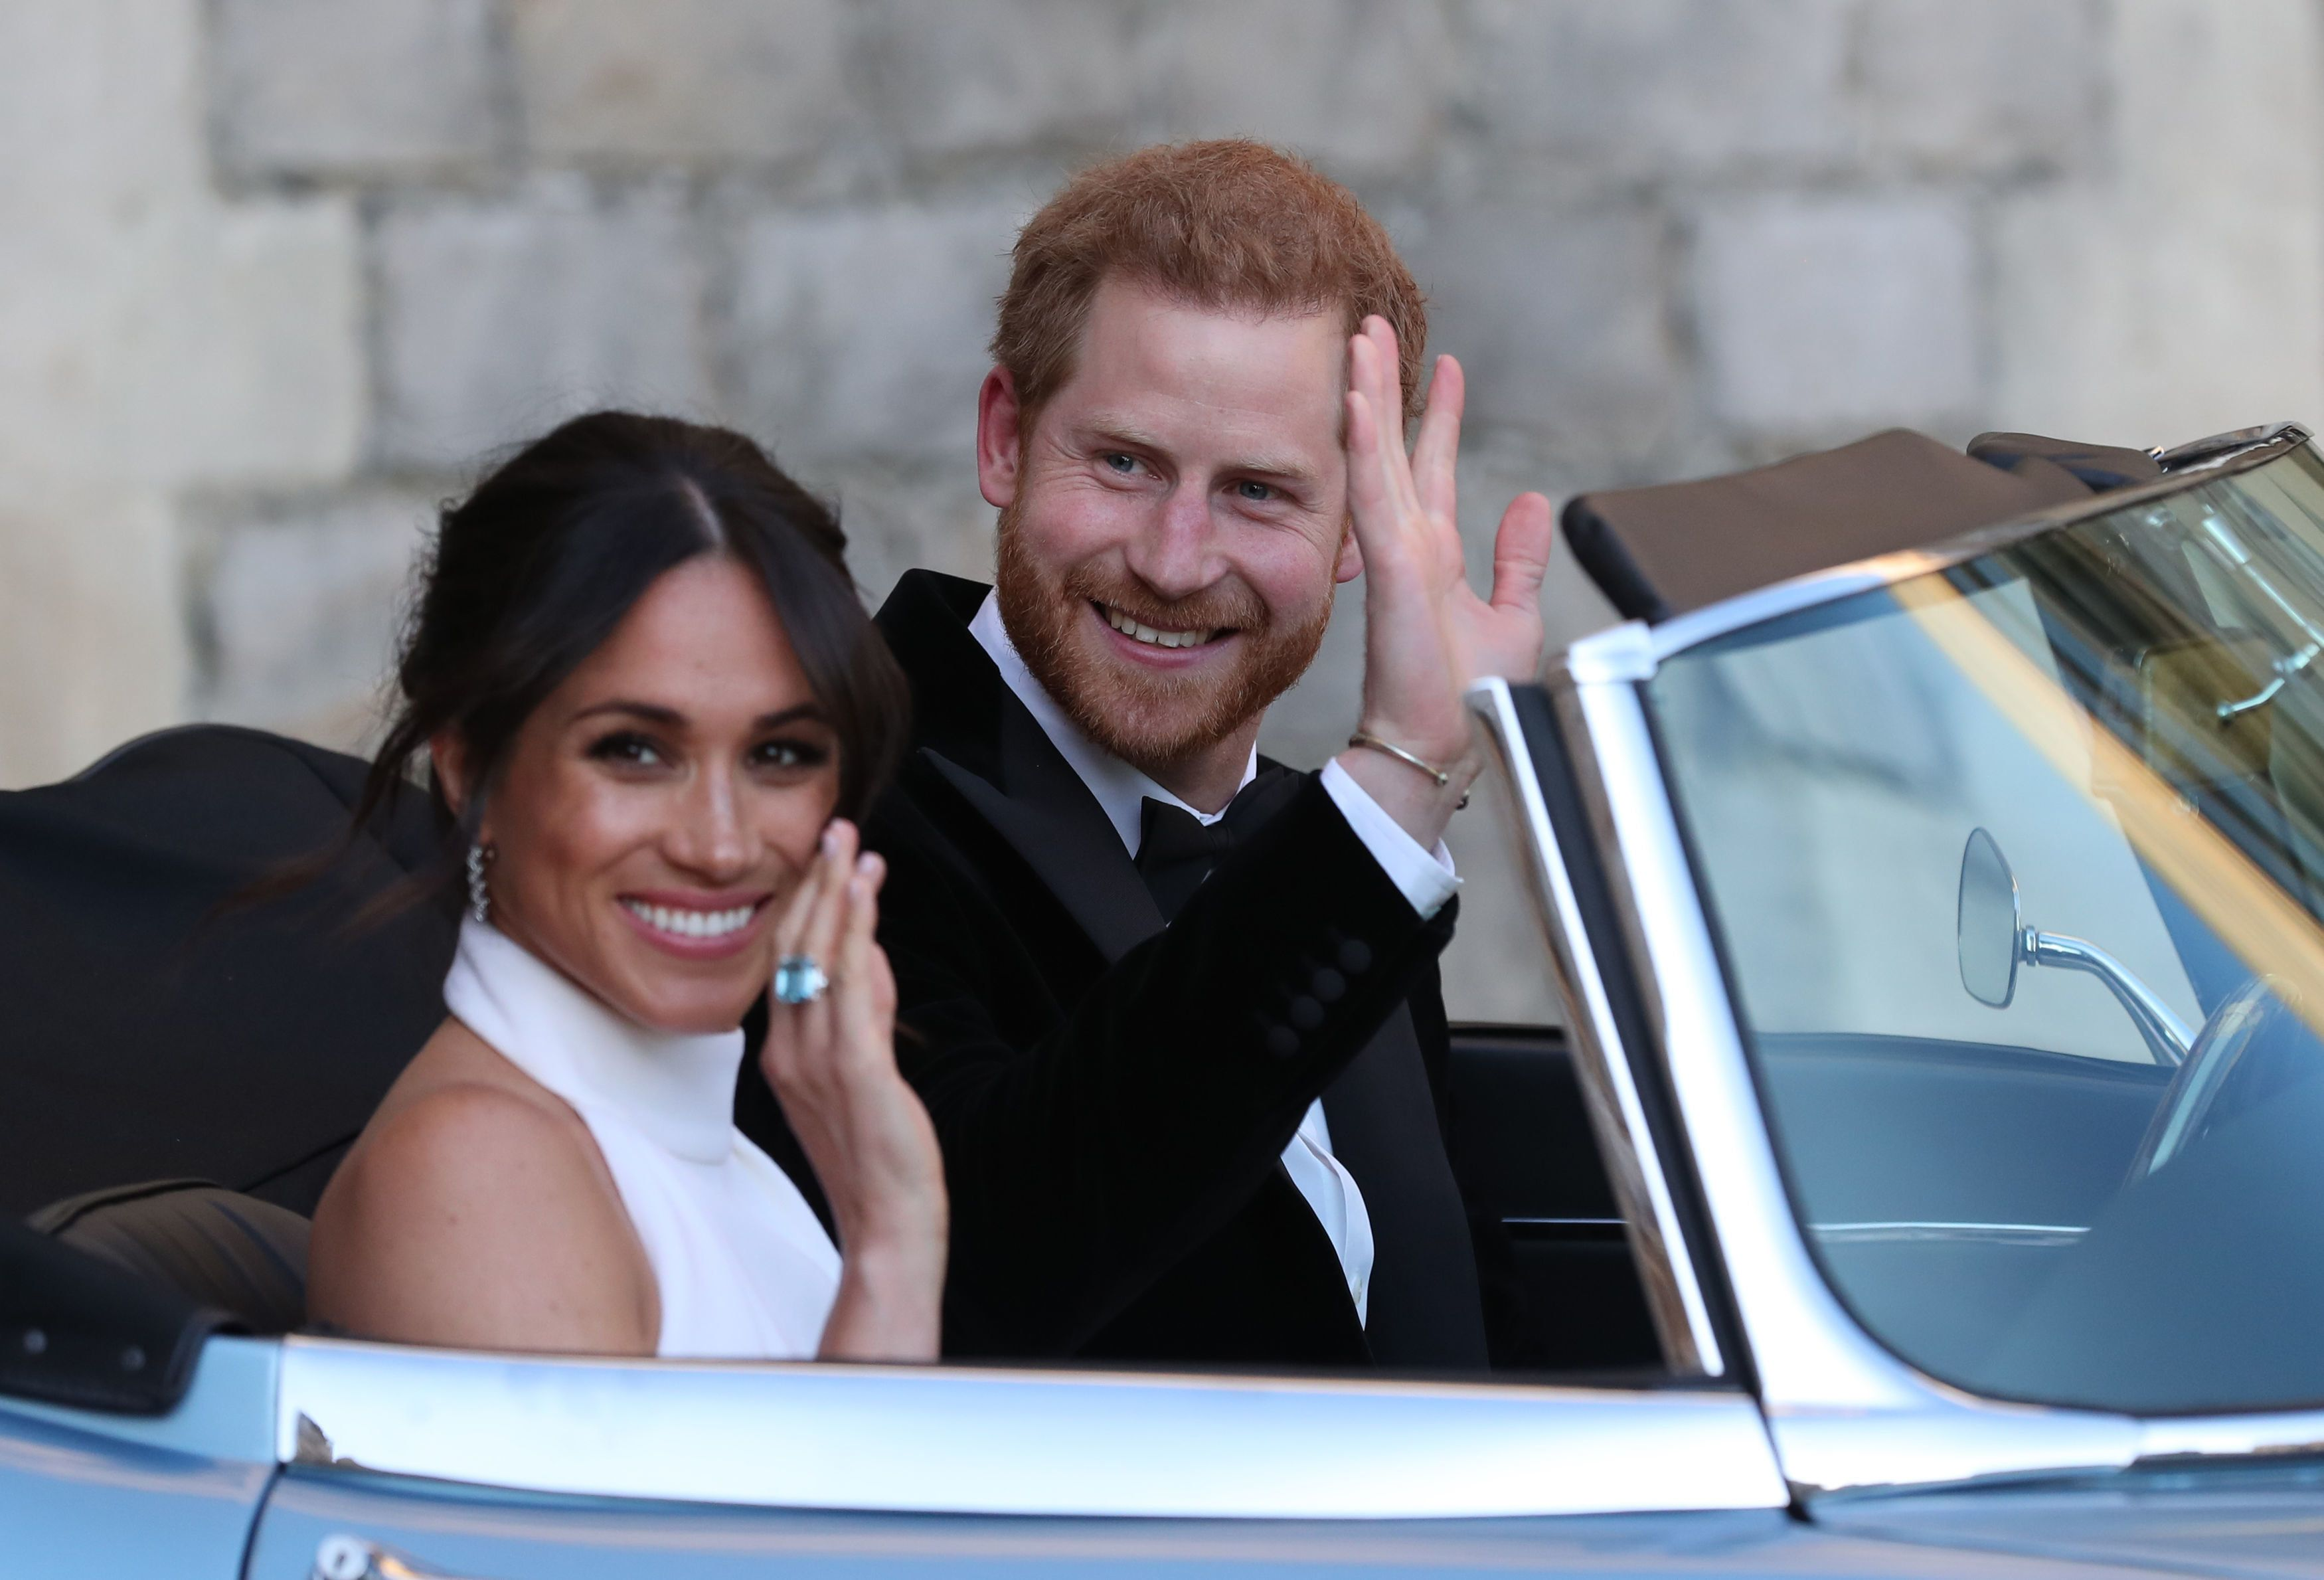 Meghan Markle and Prince Harry leaving Windsor Castle to attend an evening reception at Frogmore House.